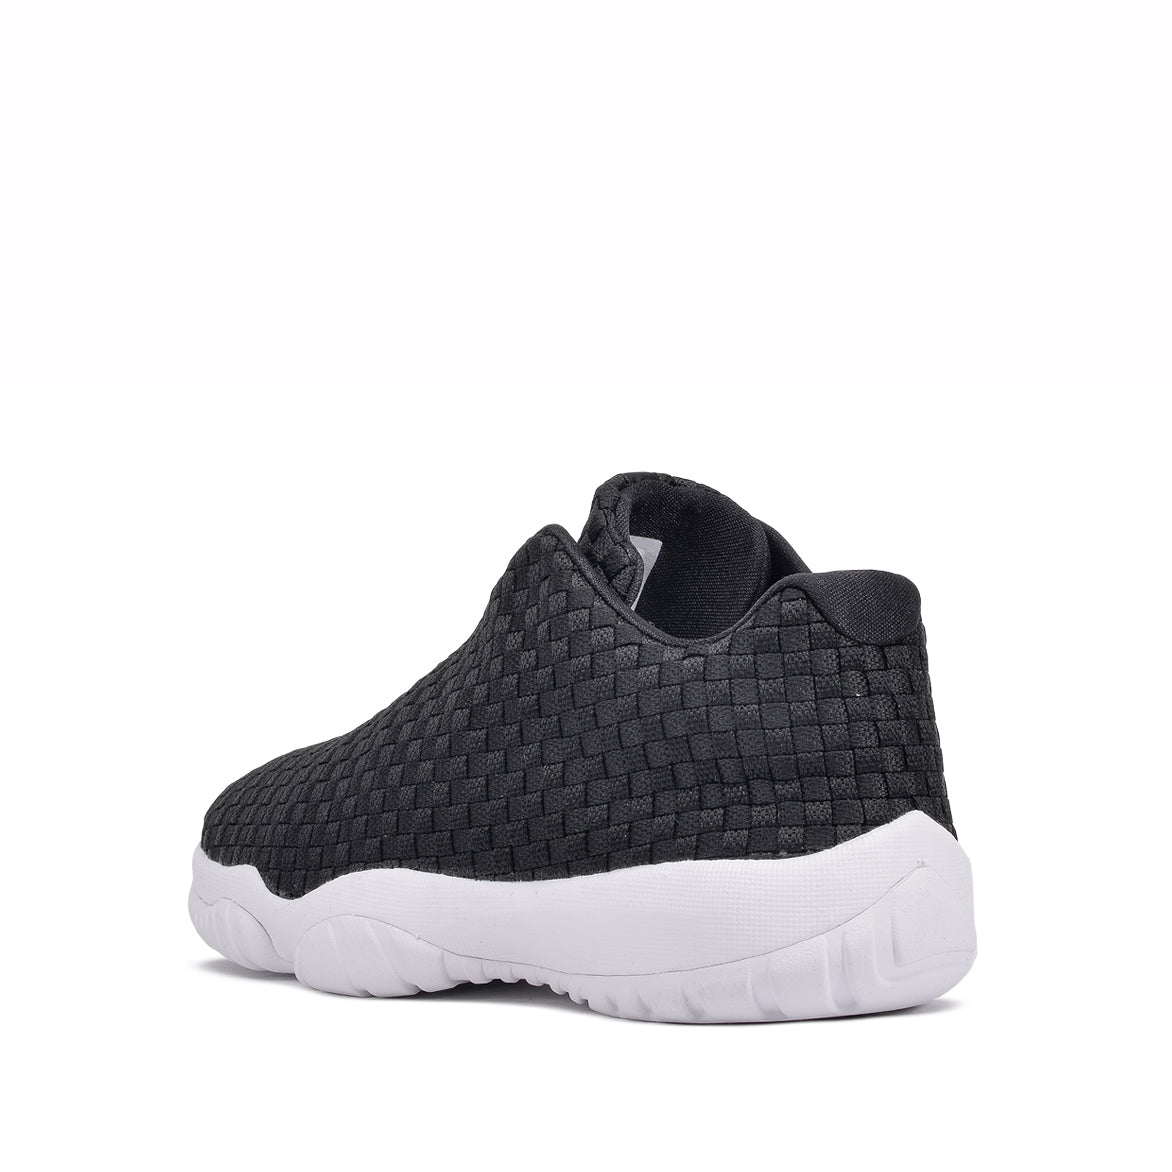 AIR JORDAN FUTURE LOW - BLACK